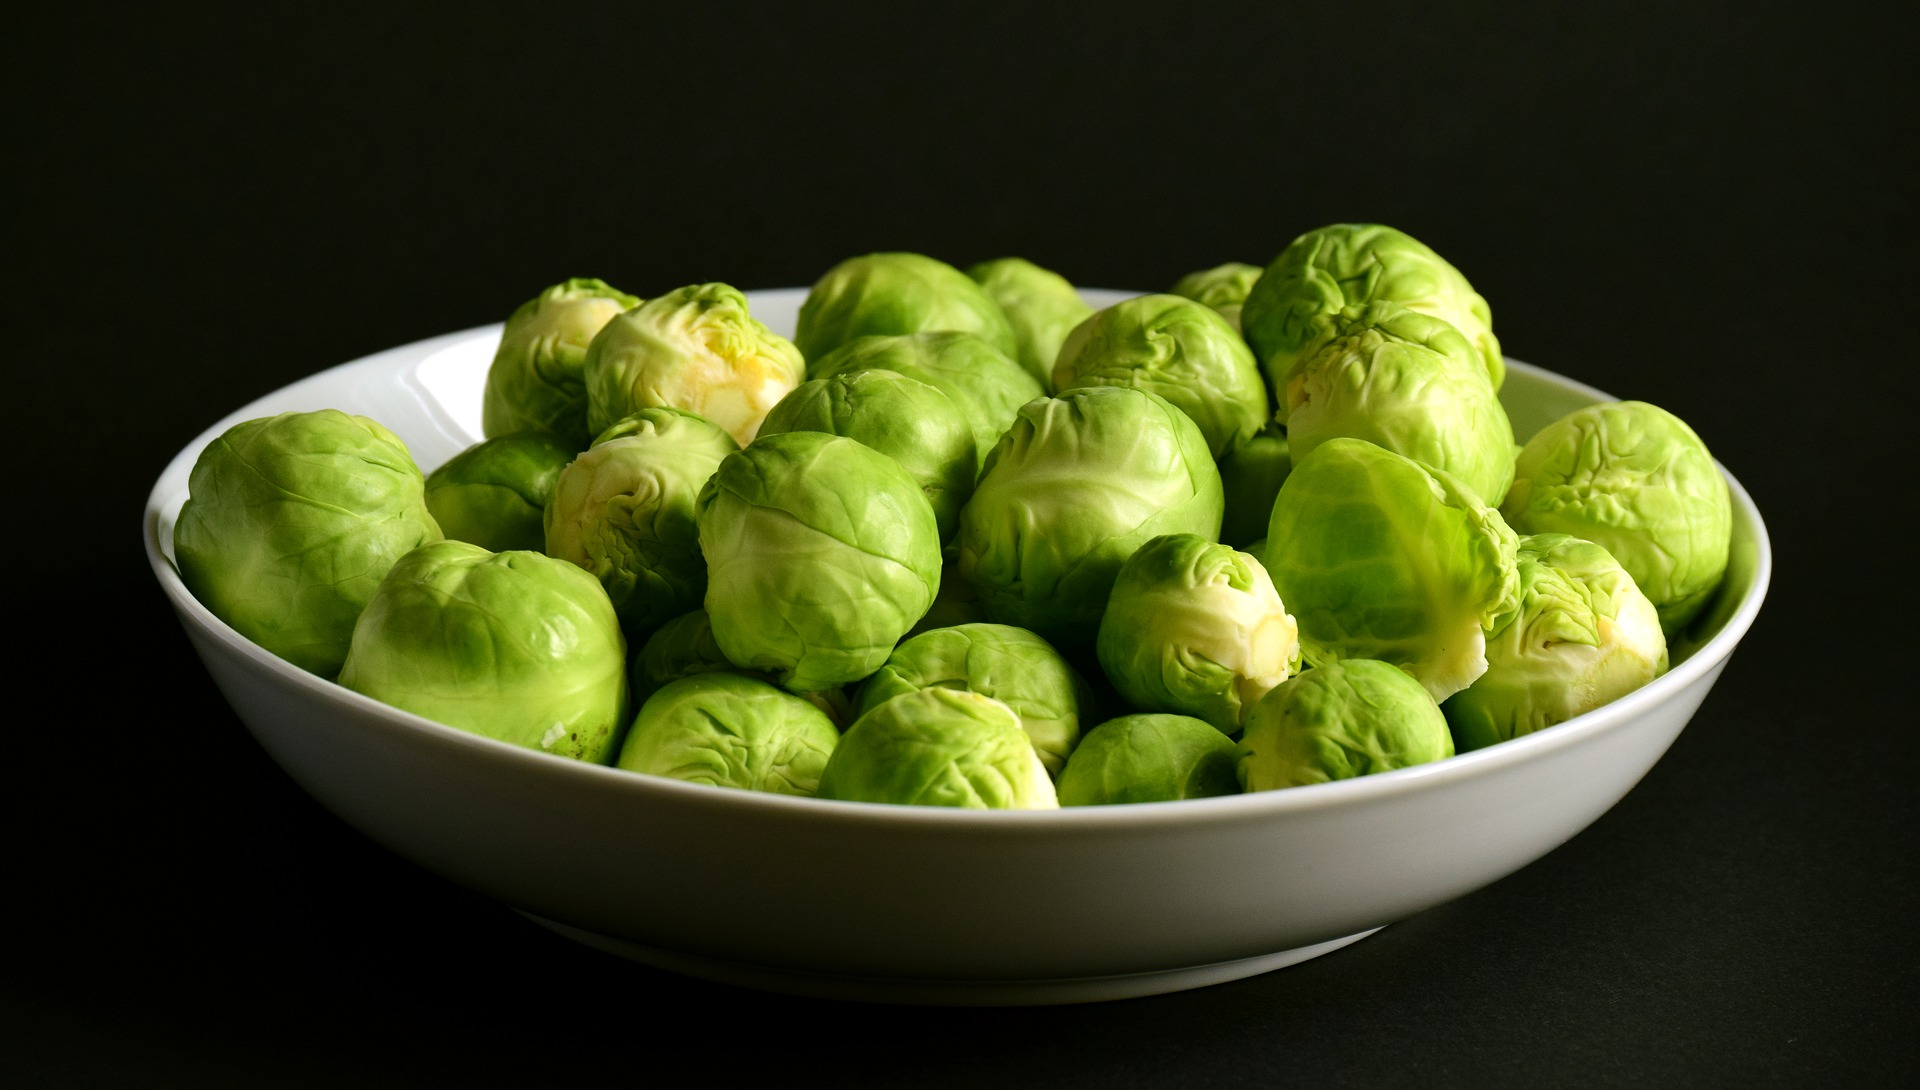 Brussels Sprouts, which are good for blood pressure